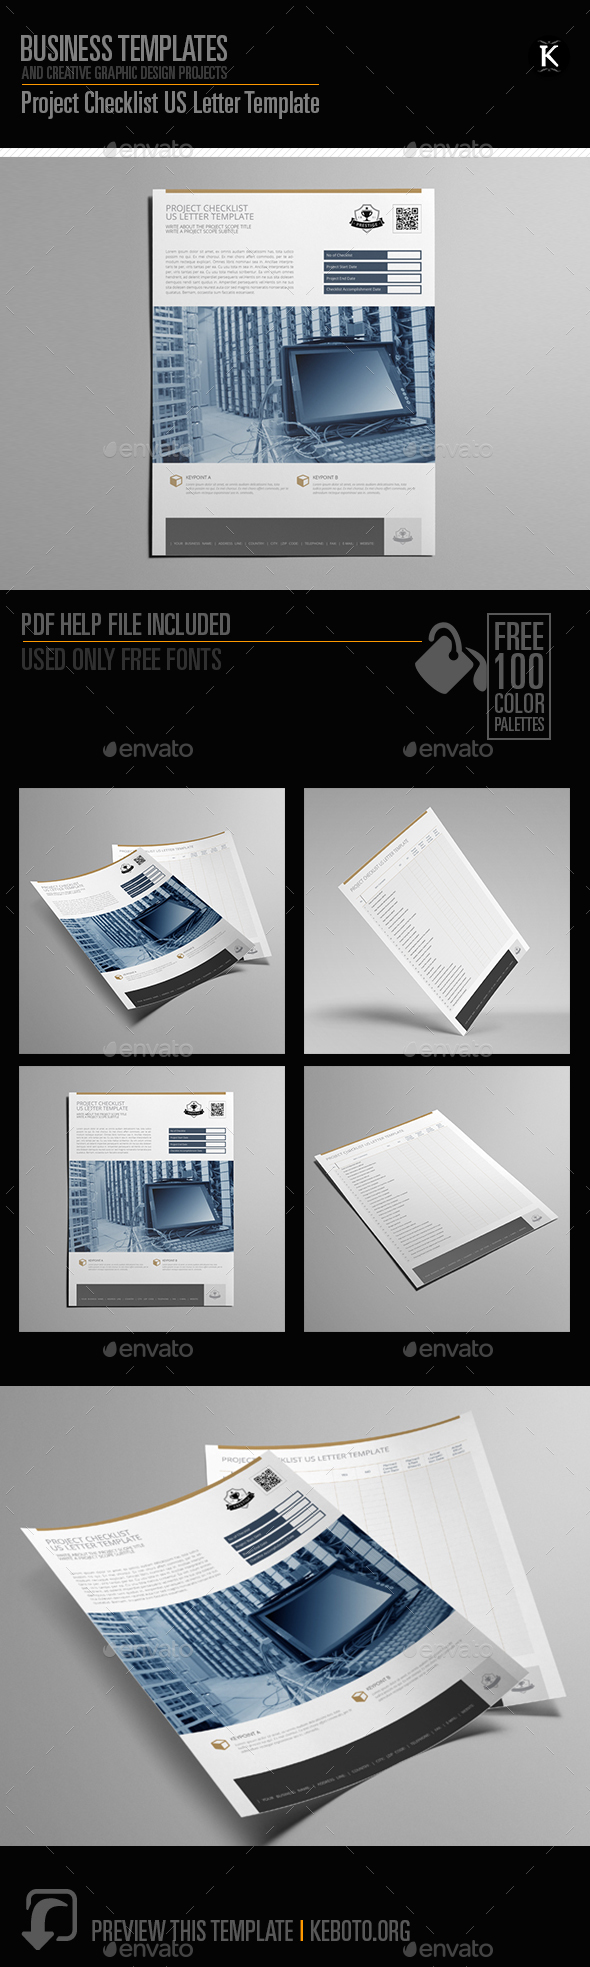 GraphicRiver Project Checklist US Letter Template 20644967